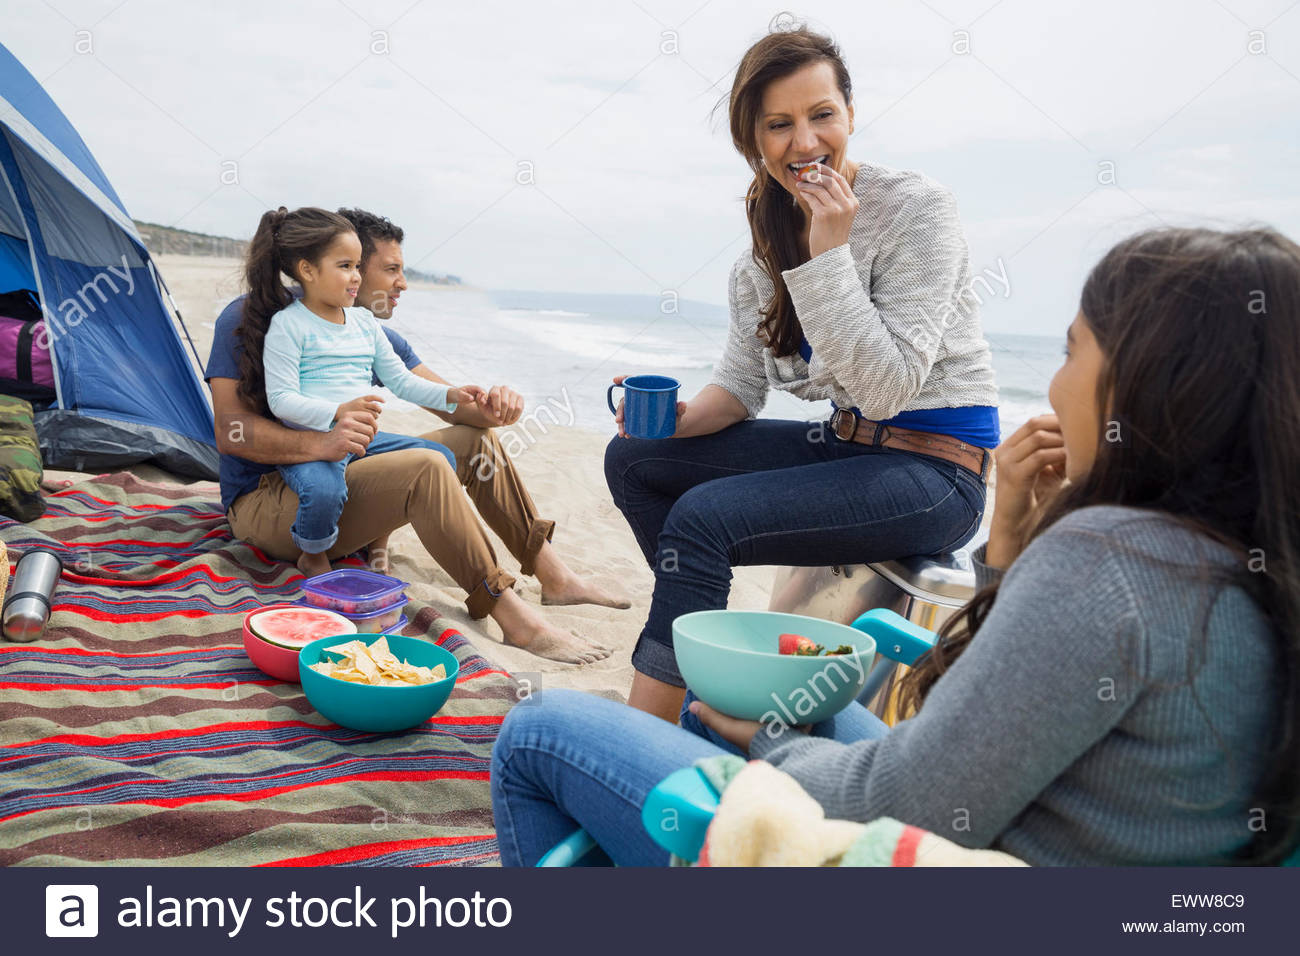 Family picnicking outside tent on beach - Stock Image